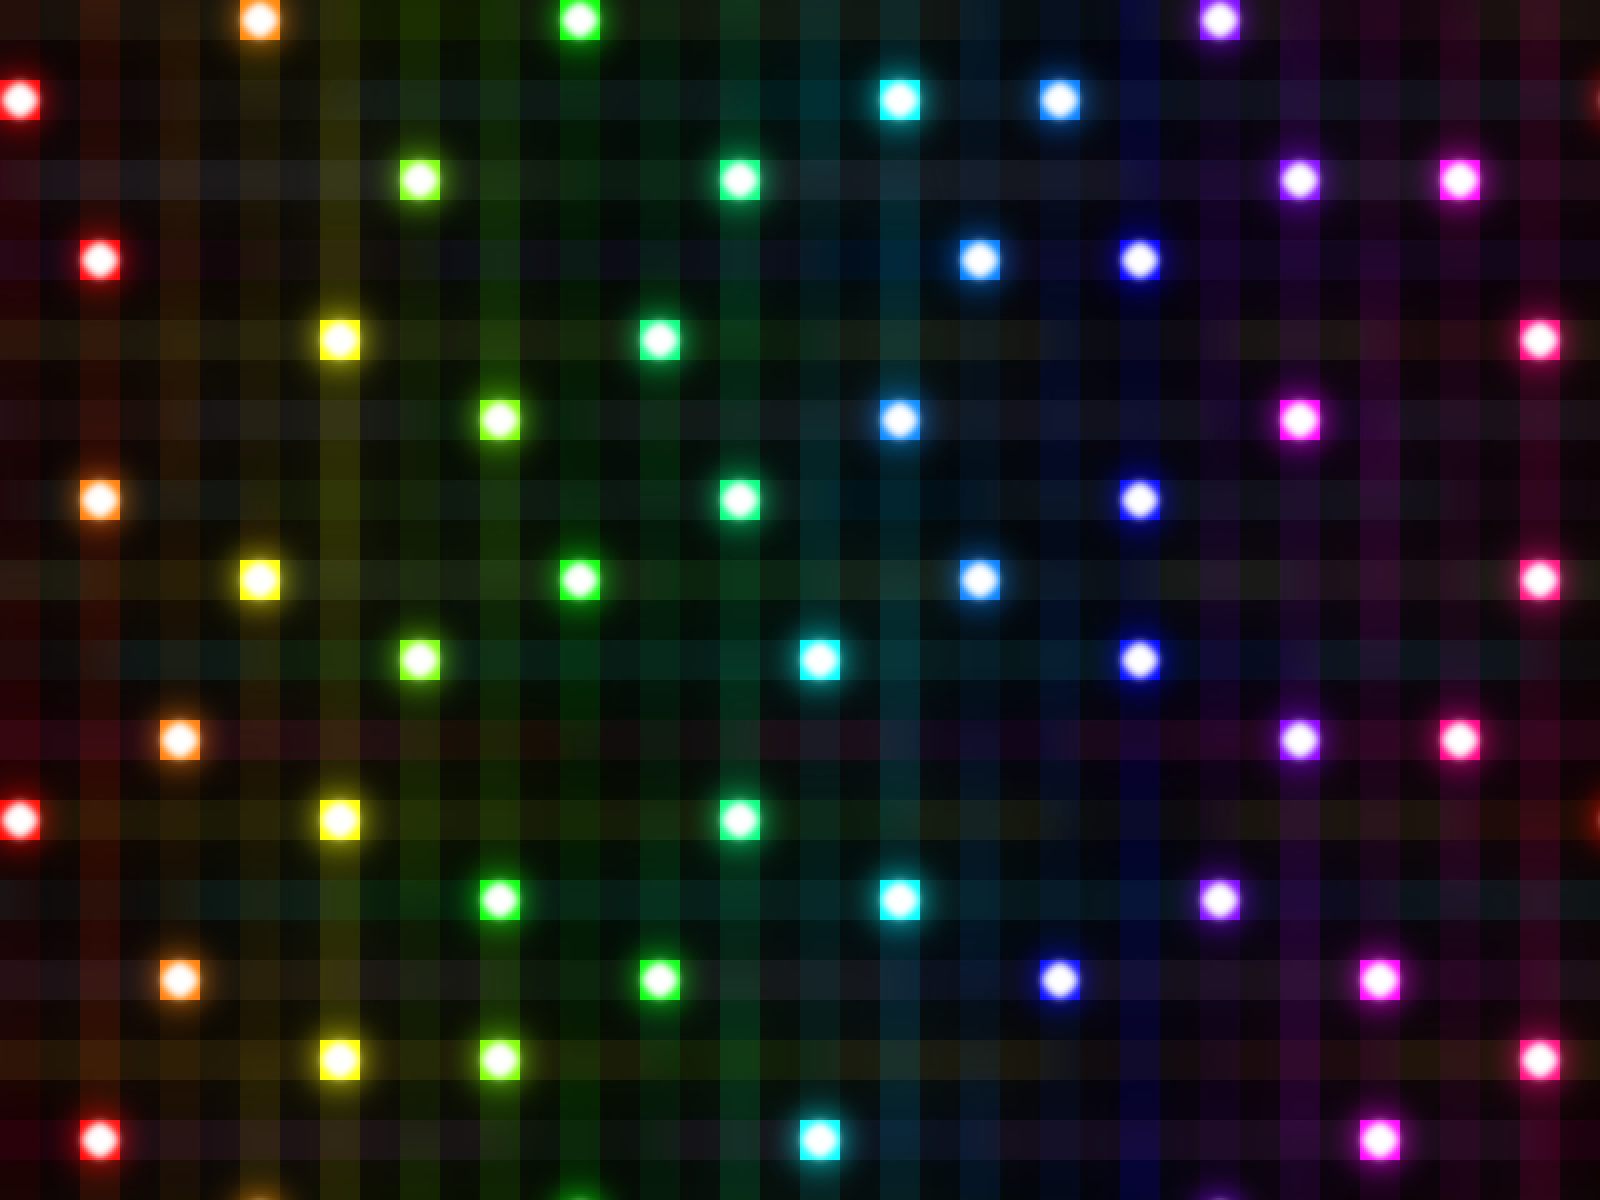 random_rainbow_light_lattice_by_the_dreaming_boy_88-da0javt.png